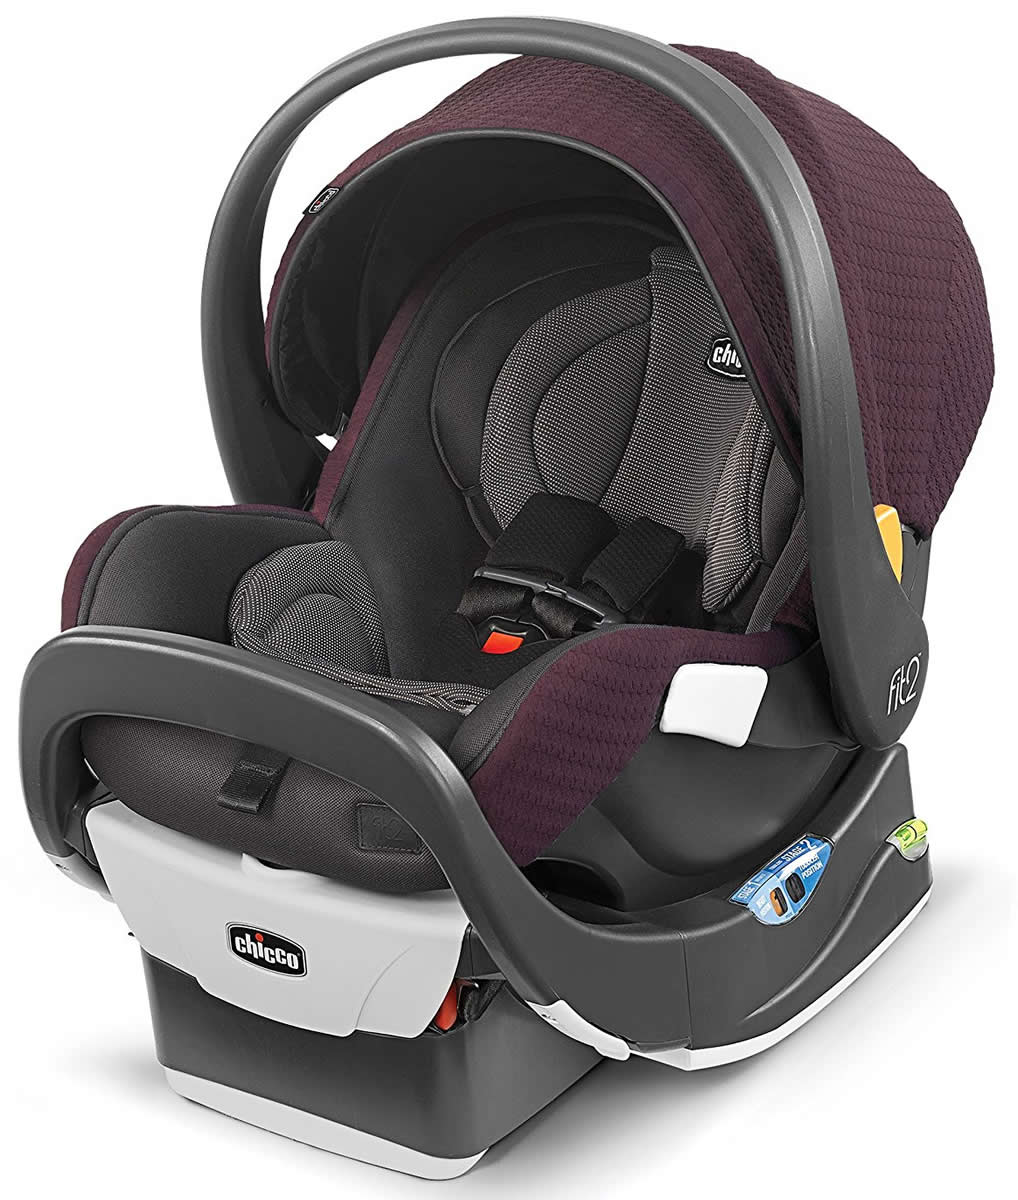 Chicco Fit2 Rear Facing Infant Toddler Car Seat